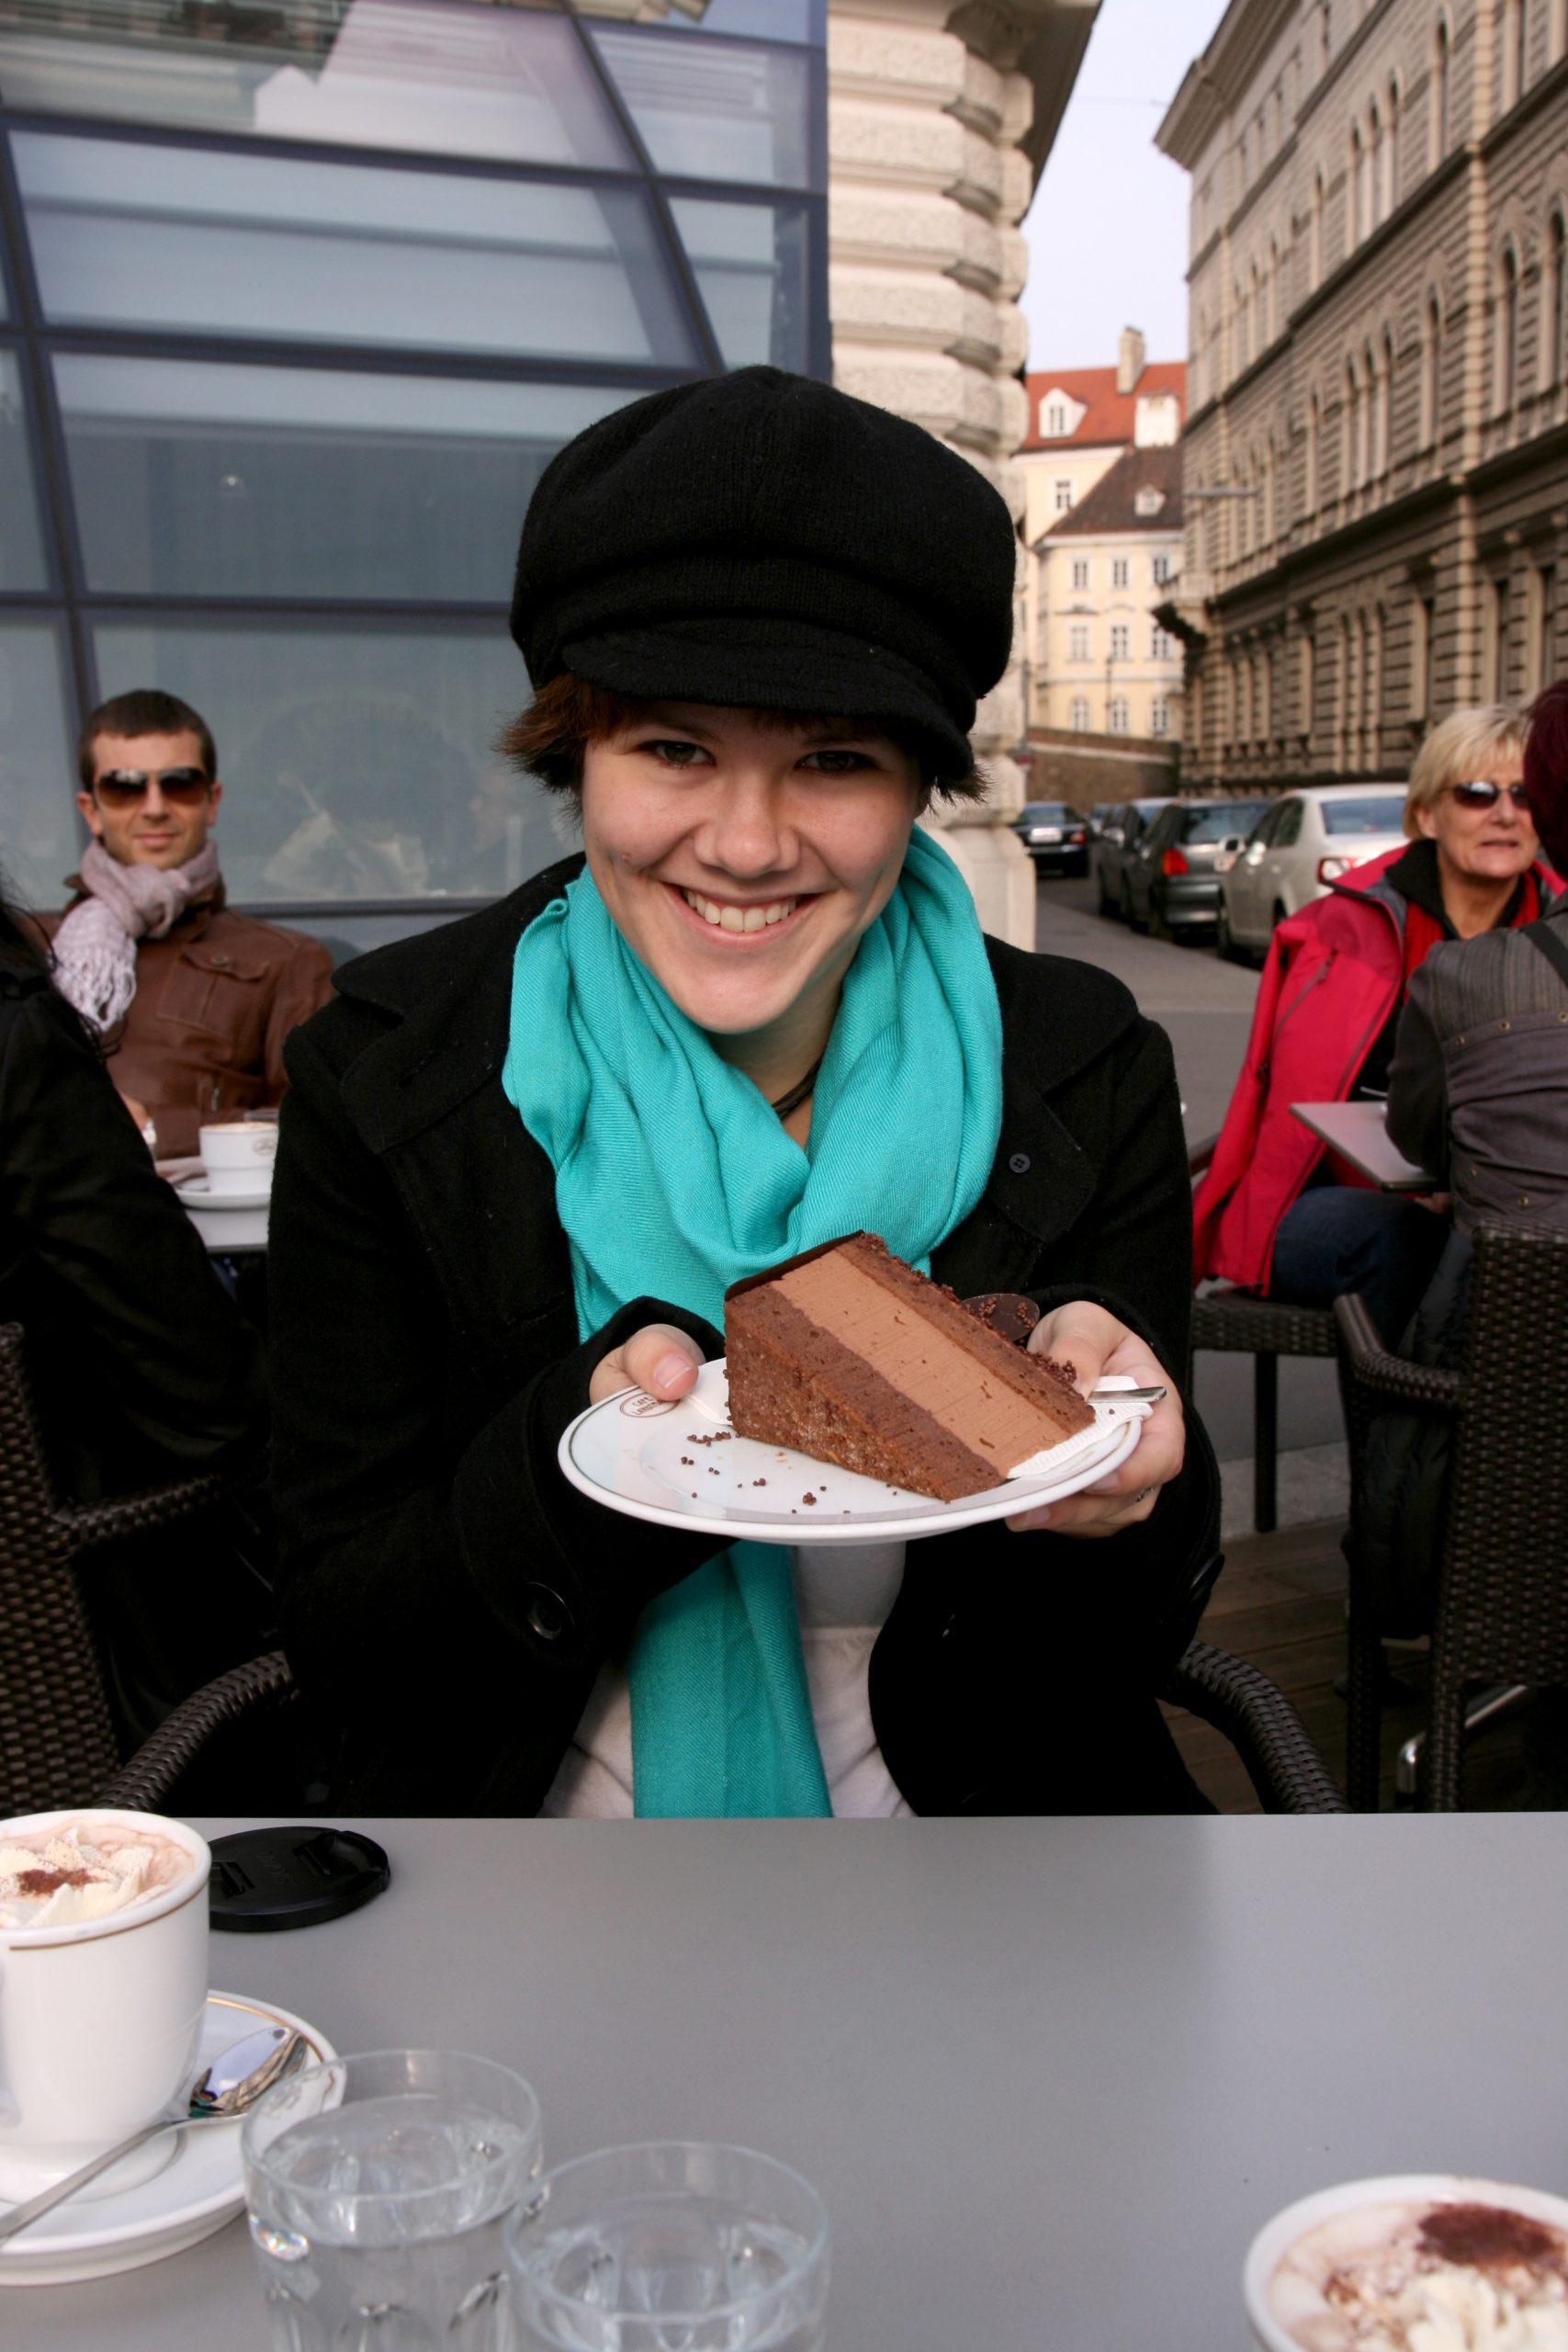 a white woman in a teal scarf and a black hat holding a slice of chocolate cake at an outdoor cafe in Vienna